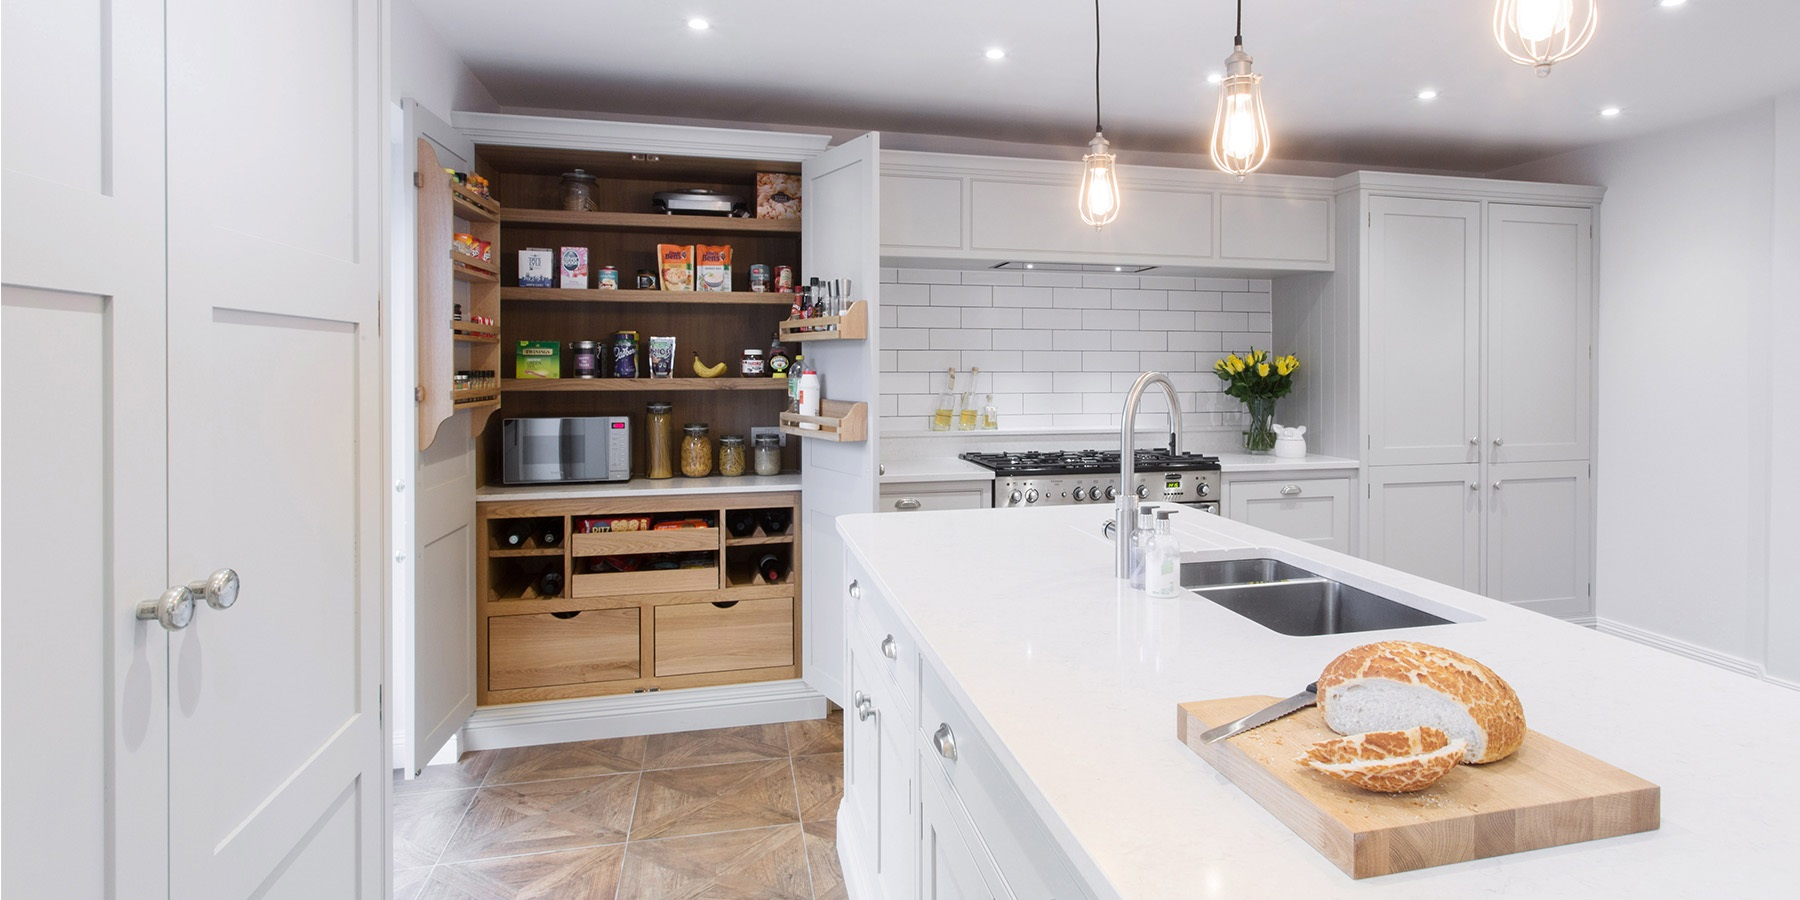 Classic Shaker Country Kitchen - Burlanes bespoke Wellsdown country kitchen with large central kitchen island.